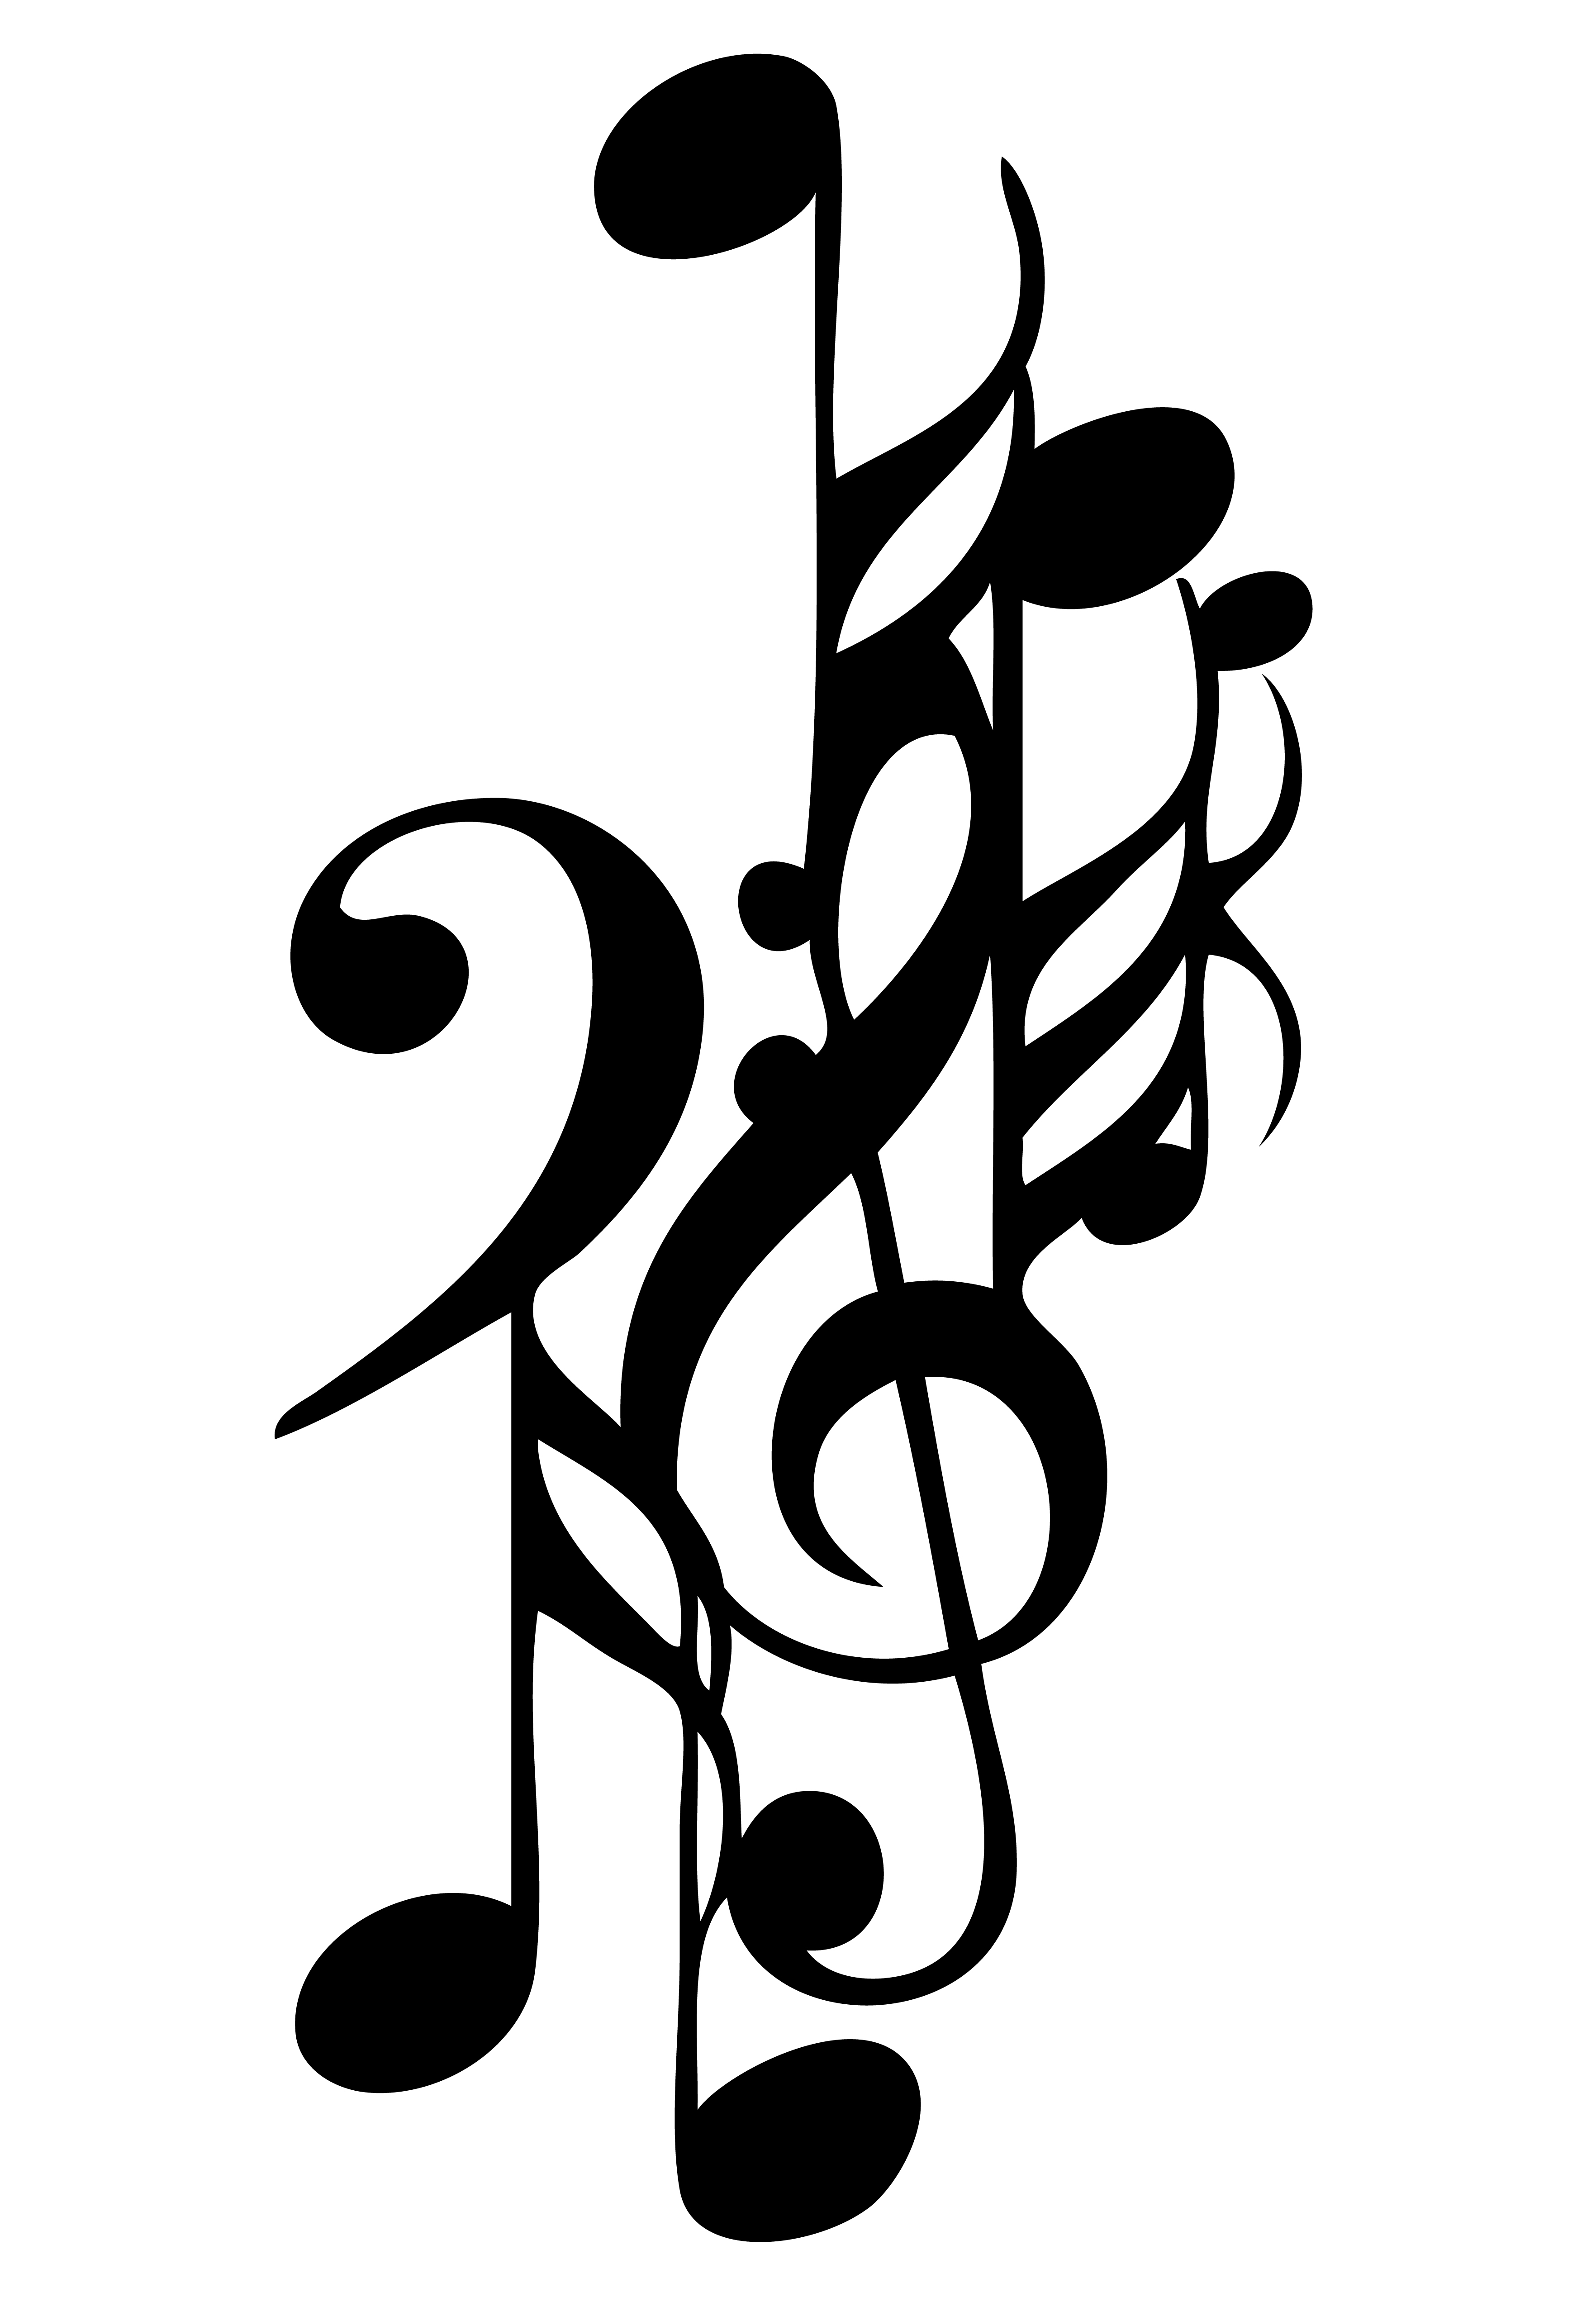 Music Note Tattoo Design Drawing Free Image